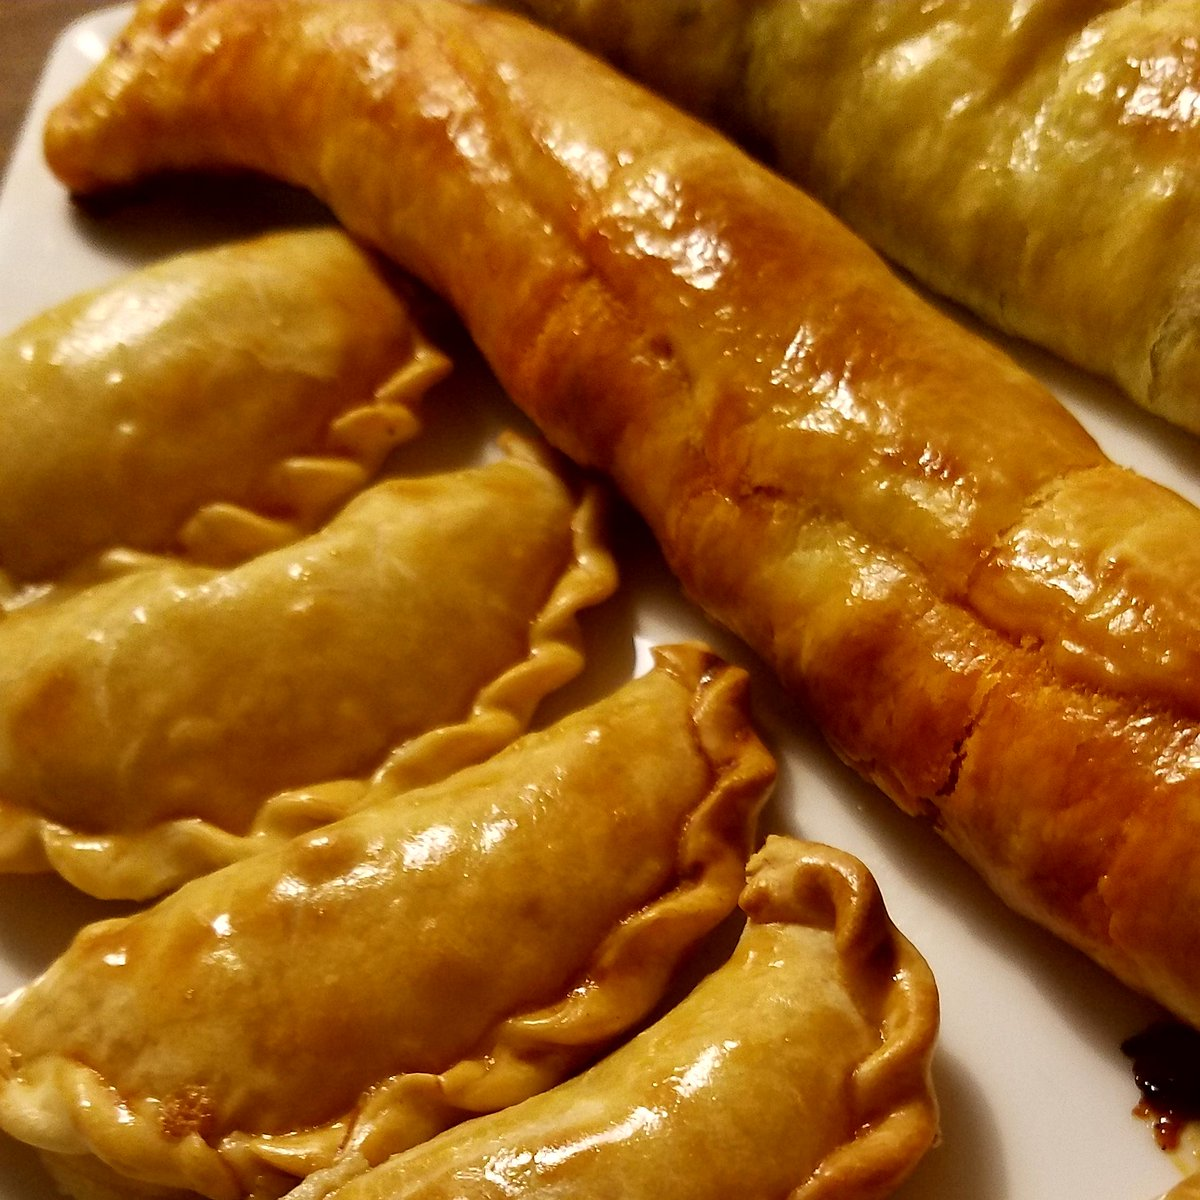 Delicious! When different traditions work wonders #empanas #empanadasdemaiz #rollosdeespinacas #rollosdesobrasada #deliciousfood #worldfood #traditionalfood #creativefood #newrecipes #empanadascruceñas #santacruzbolivia #palmademallorca #Spain #Bolivia @smygoodness